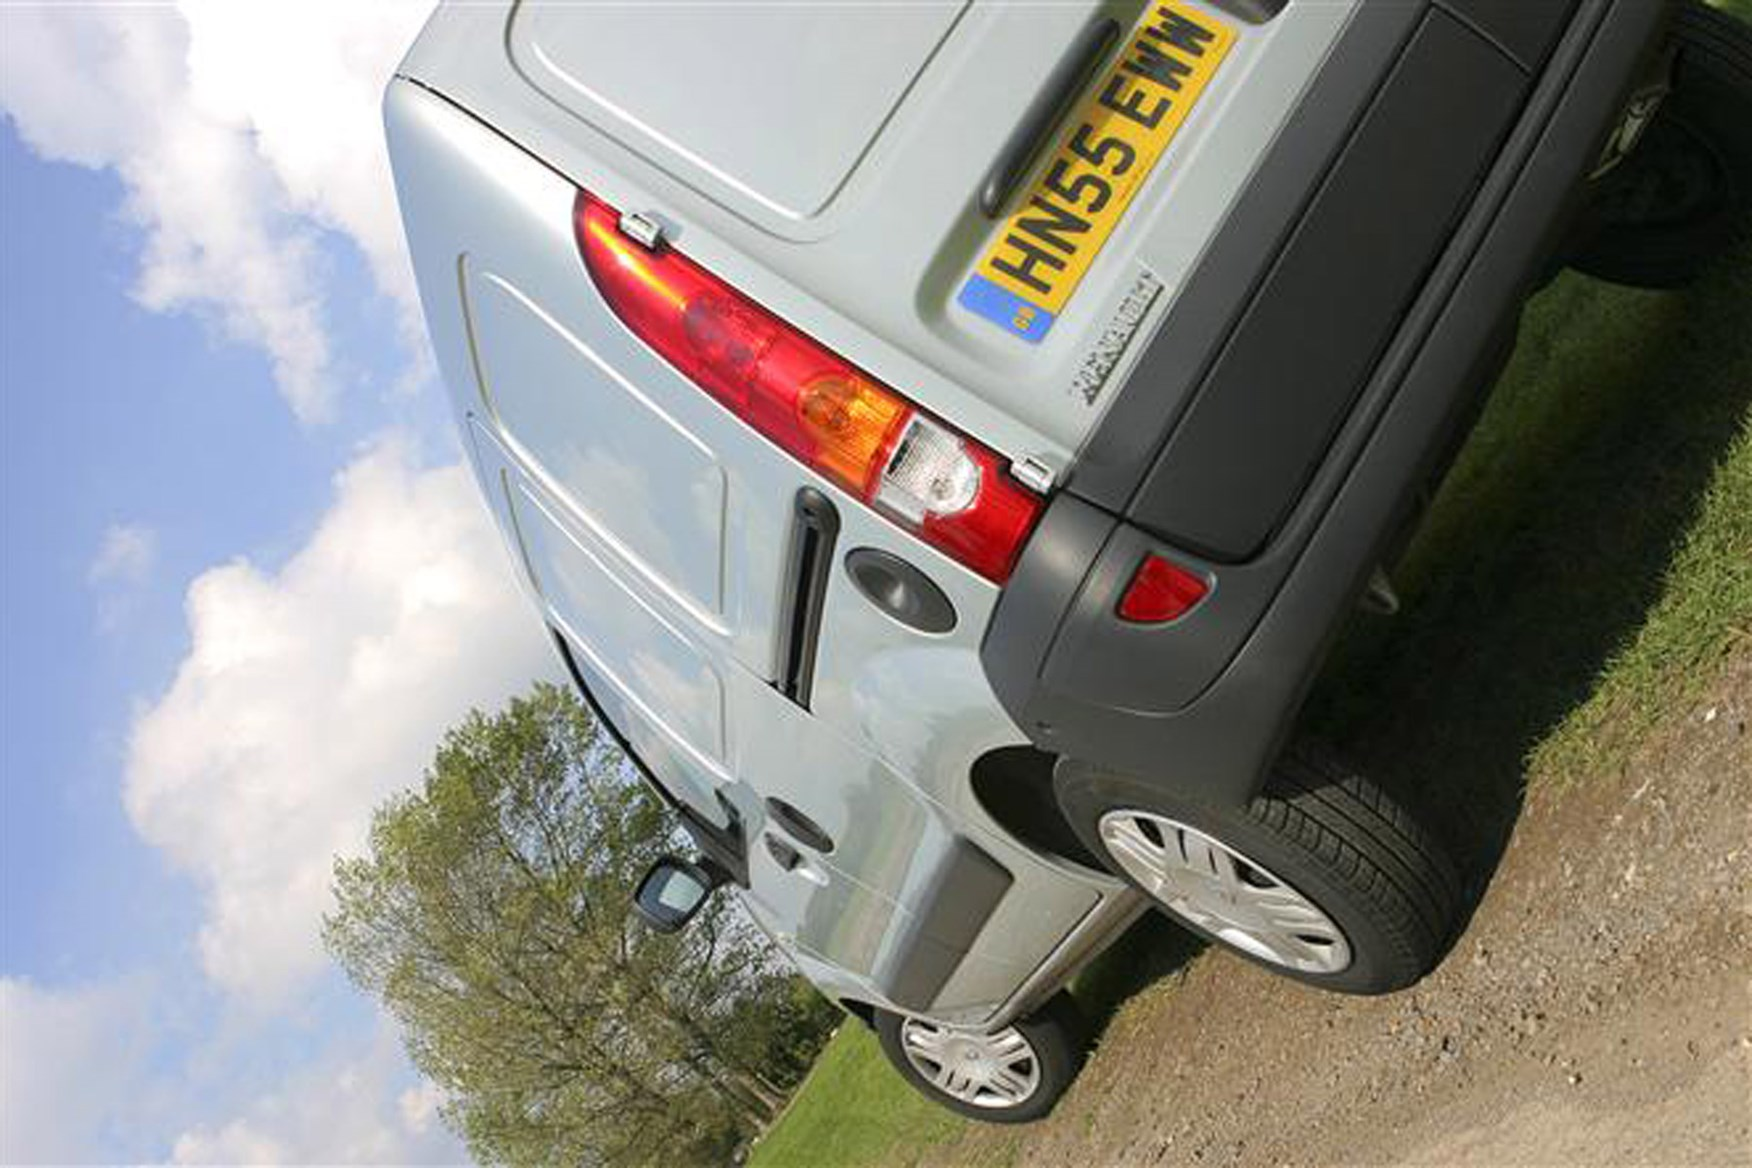 Renault Kangoo review on Parkers Vans - rear exterior